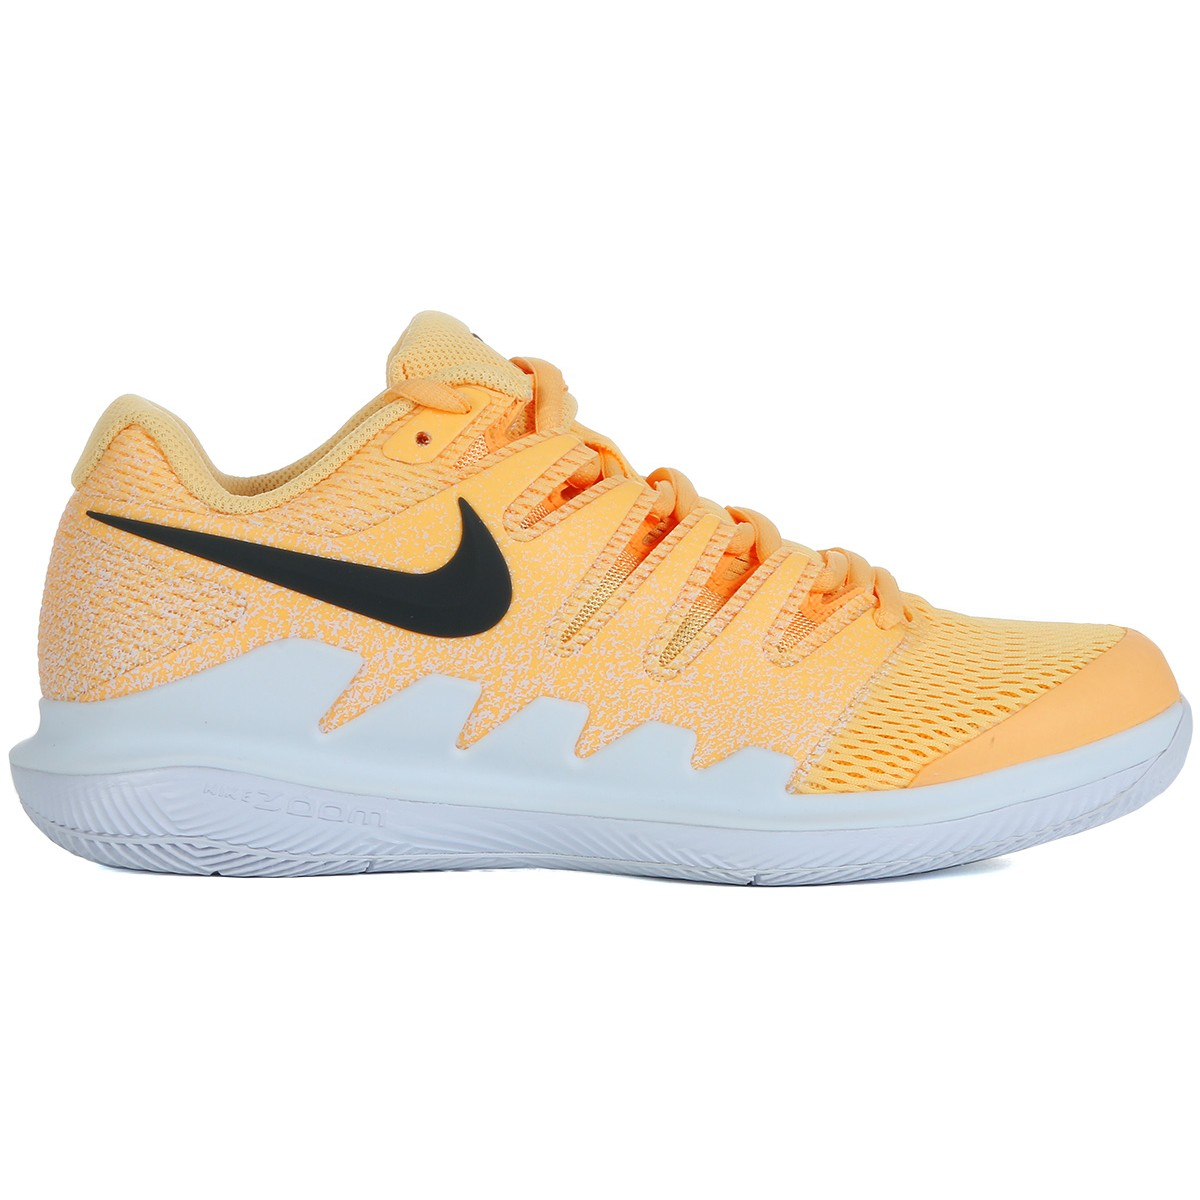 nike chaussures tennis homme